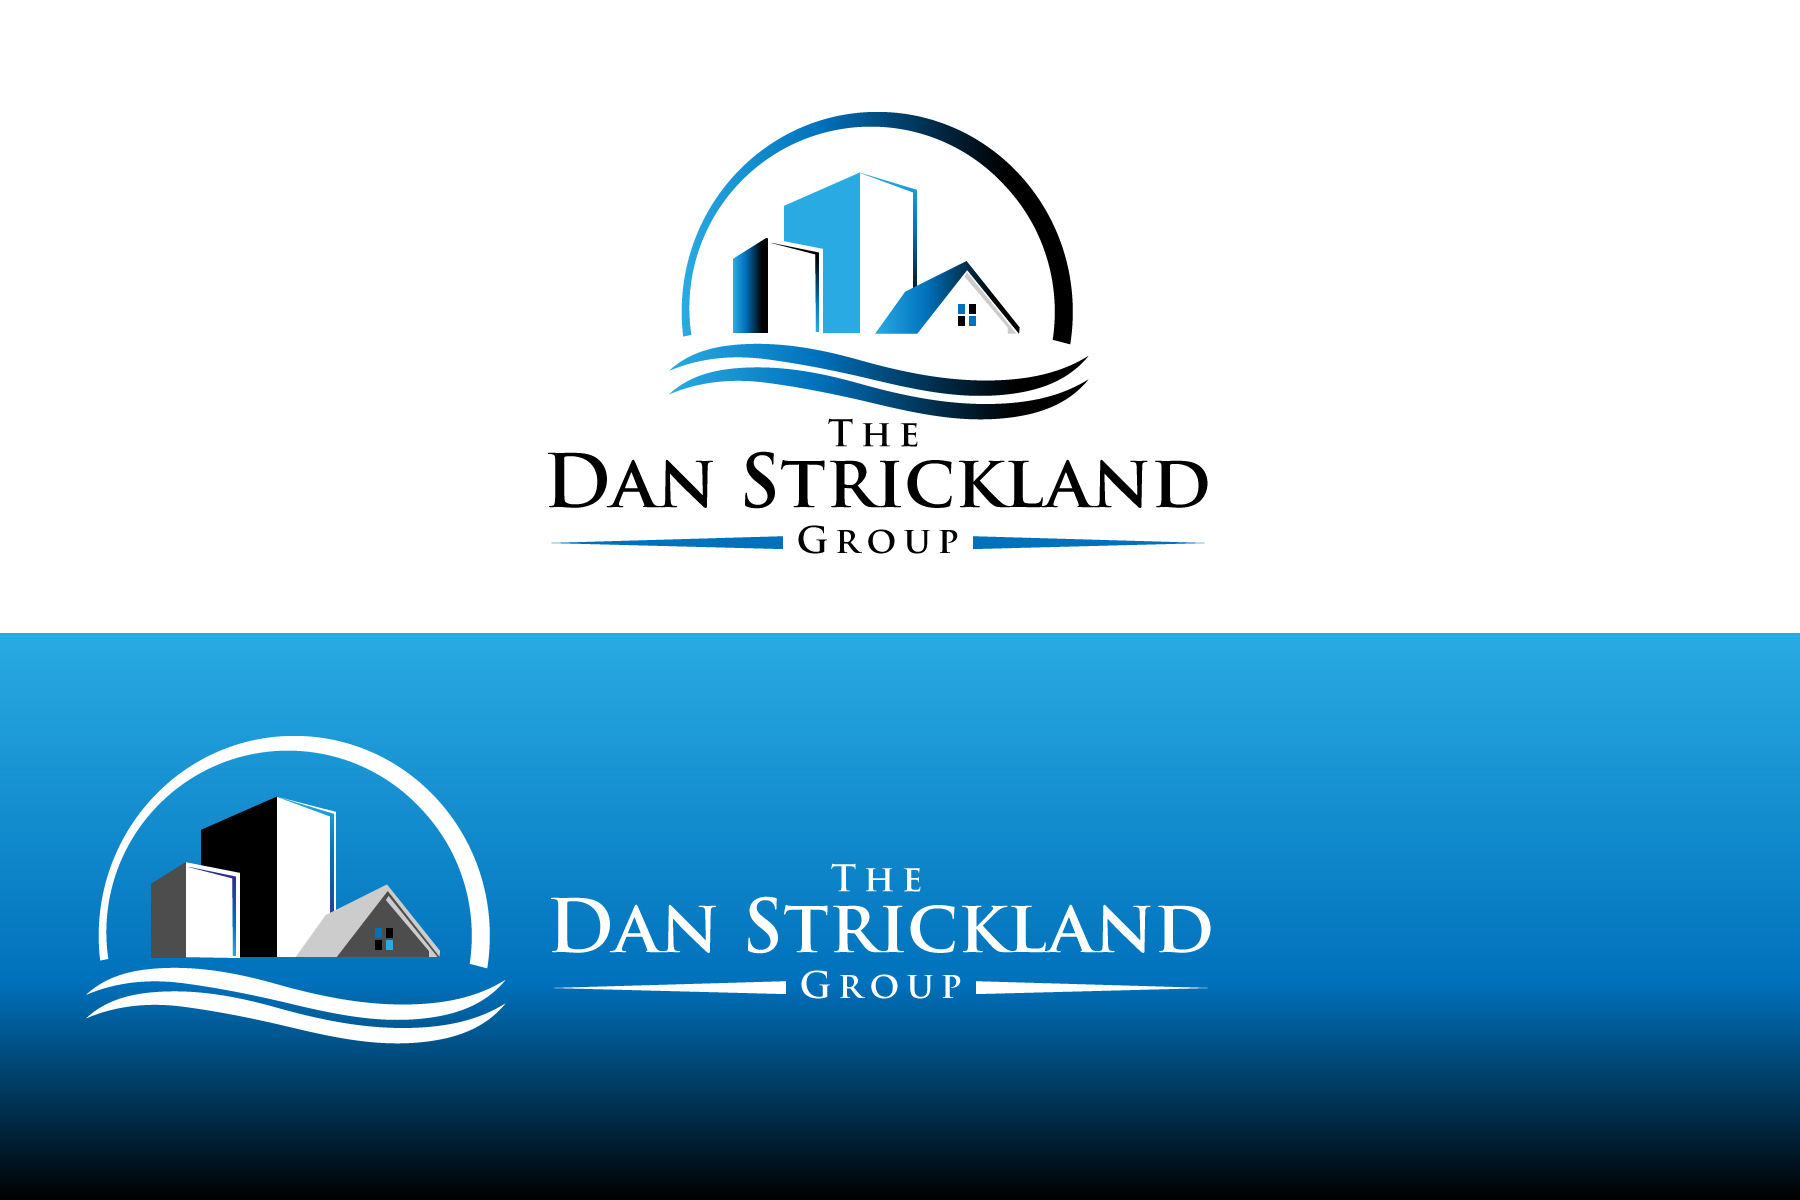 Logo Design by Jagdeep Singh - Entry No. 260 in the Logo Design Contest Creative Logo Design for The Dan Strickland Group.